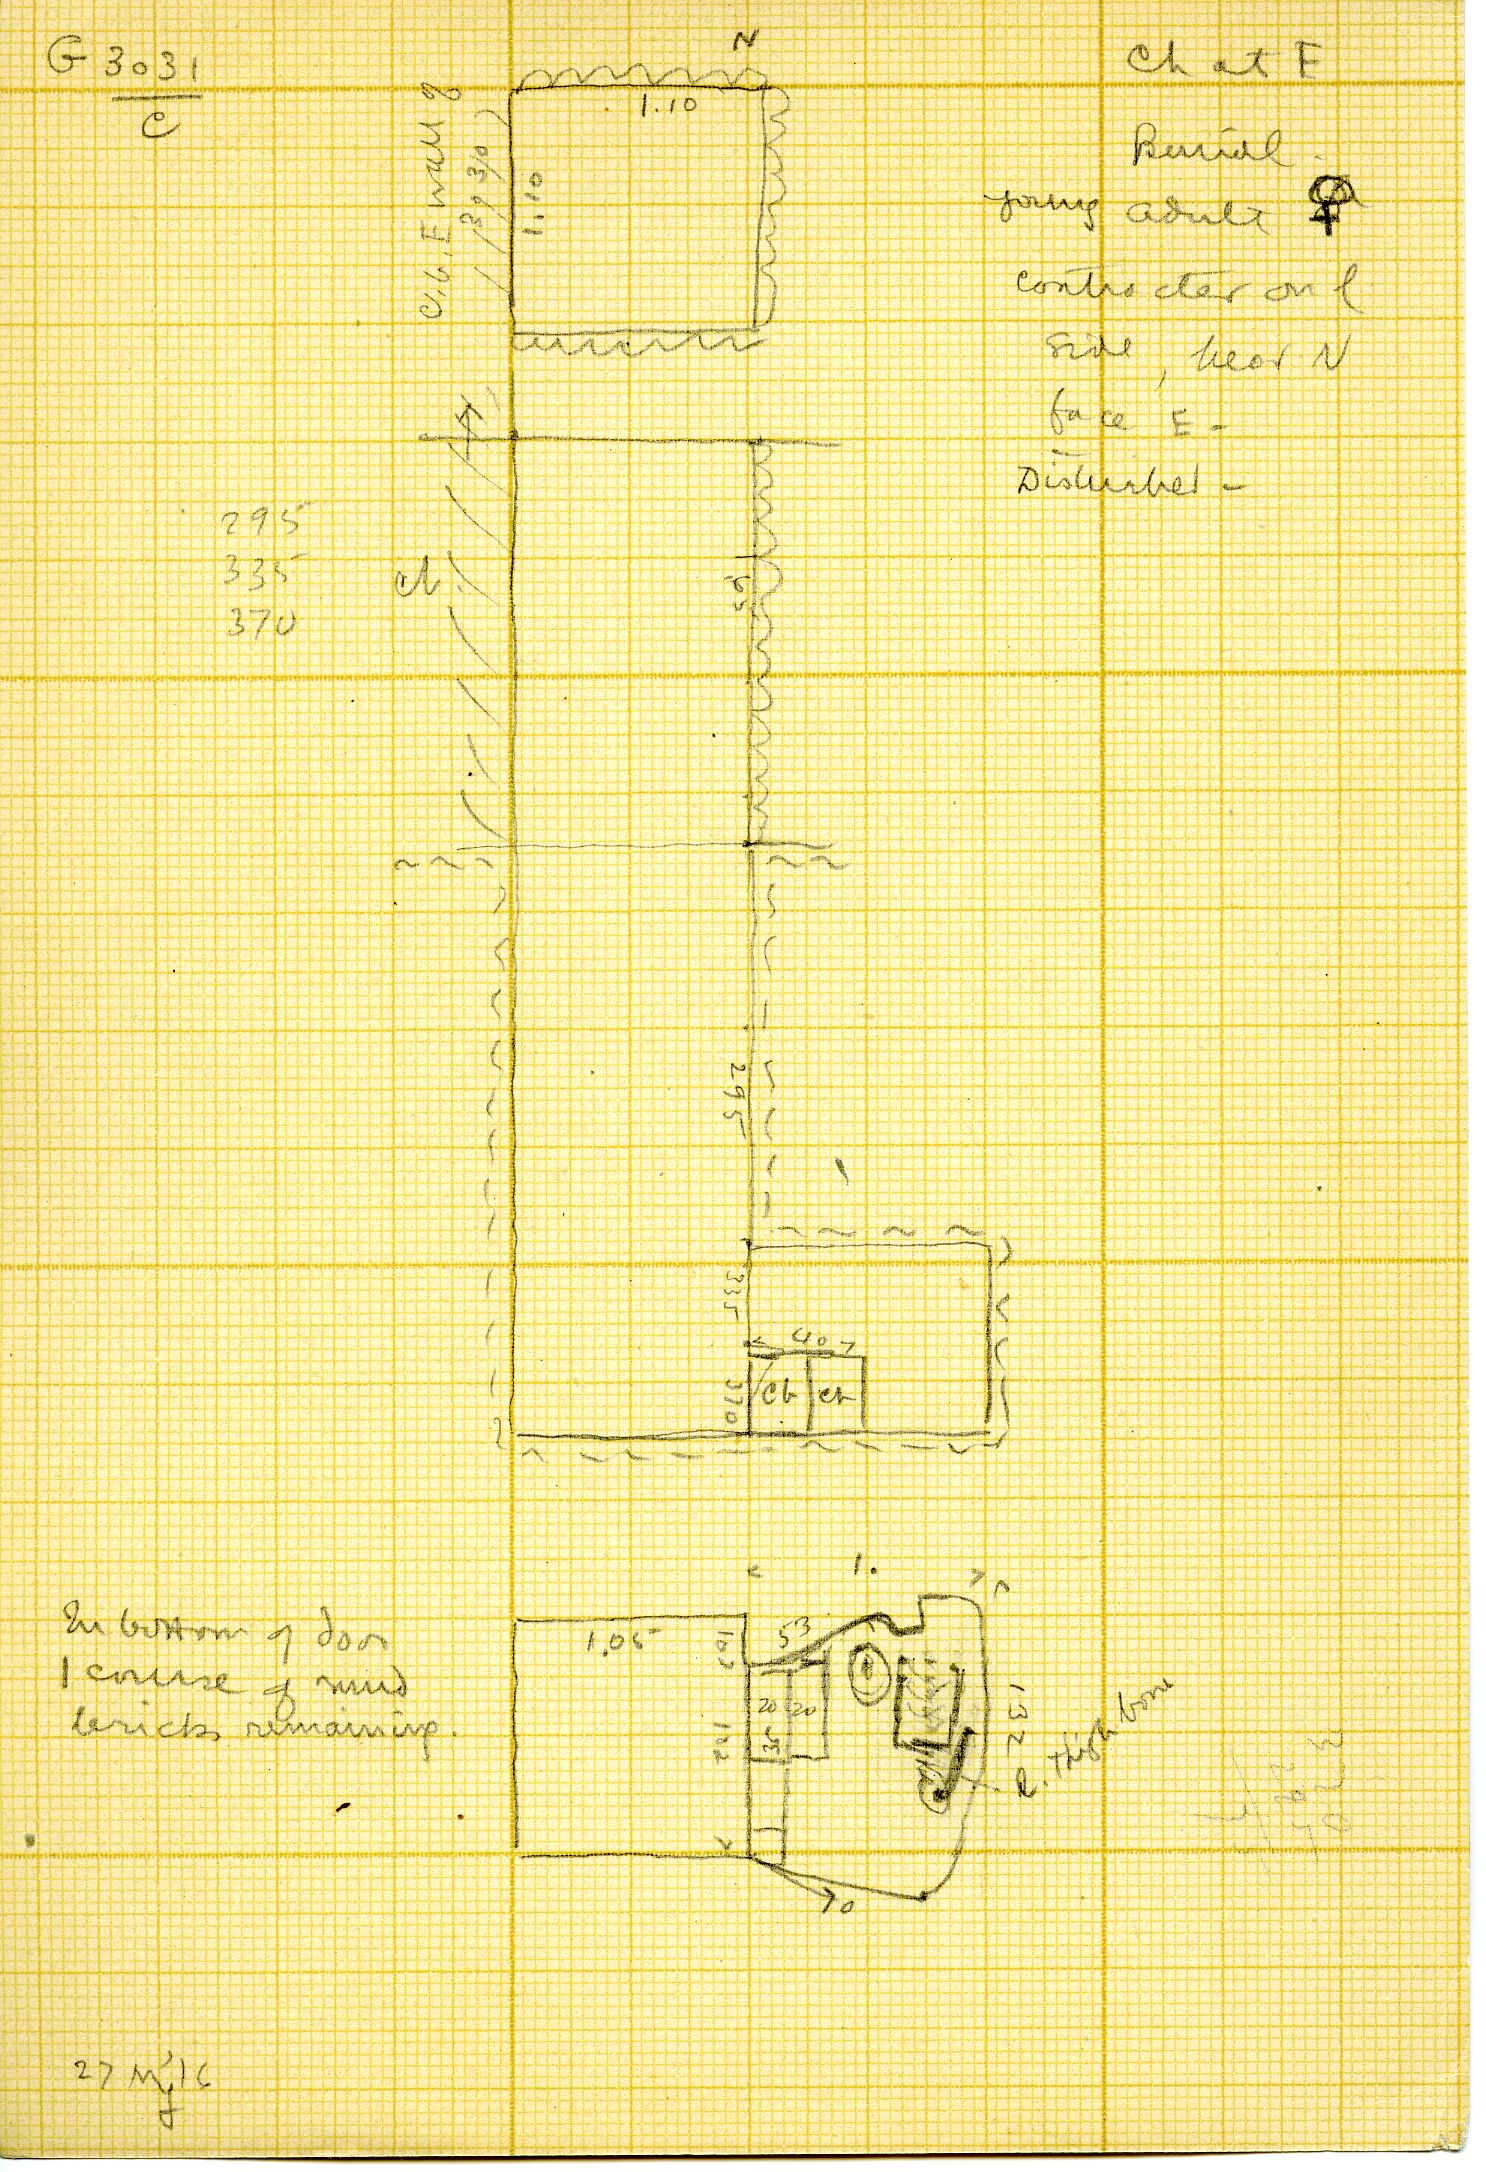 Maps and plans: G 3031, Shaft C